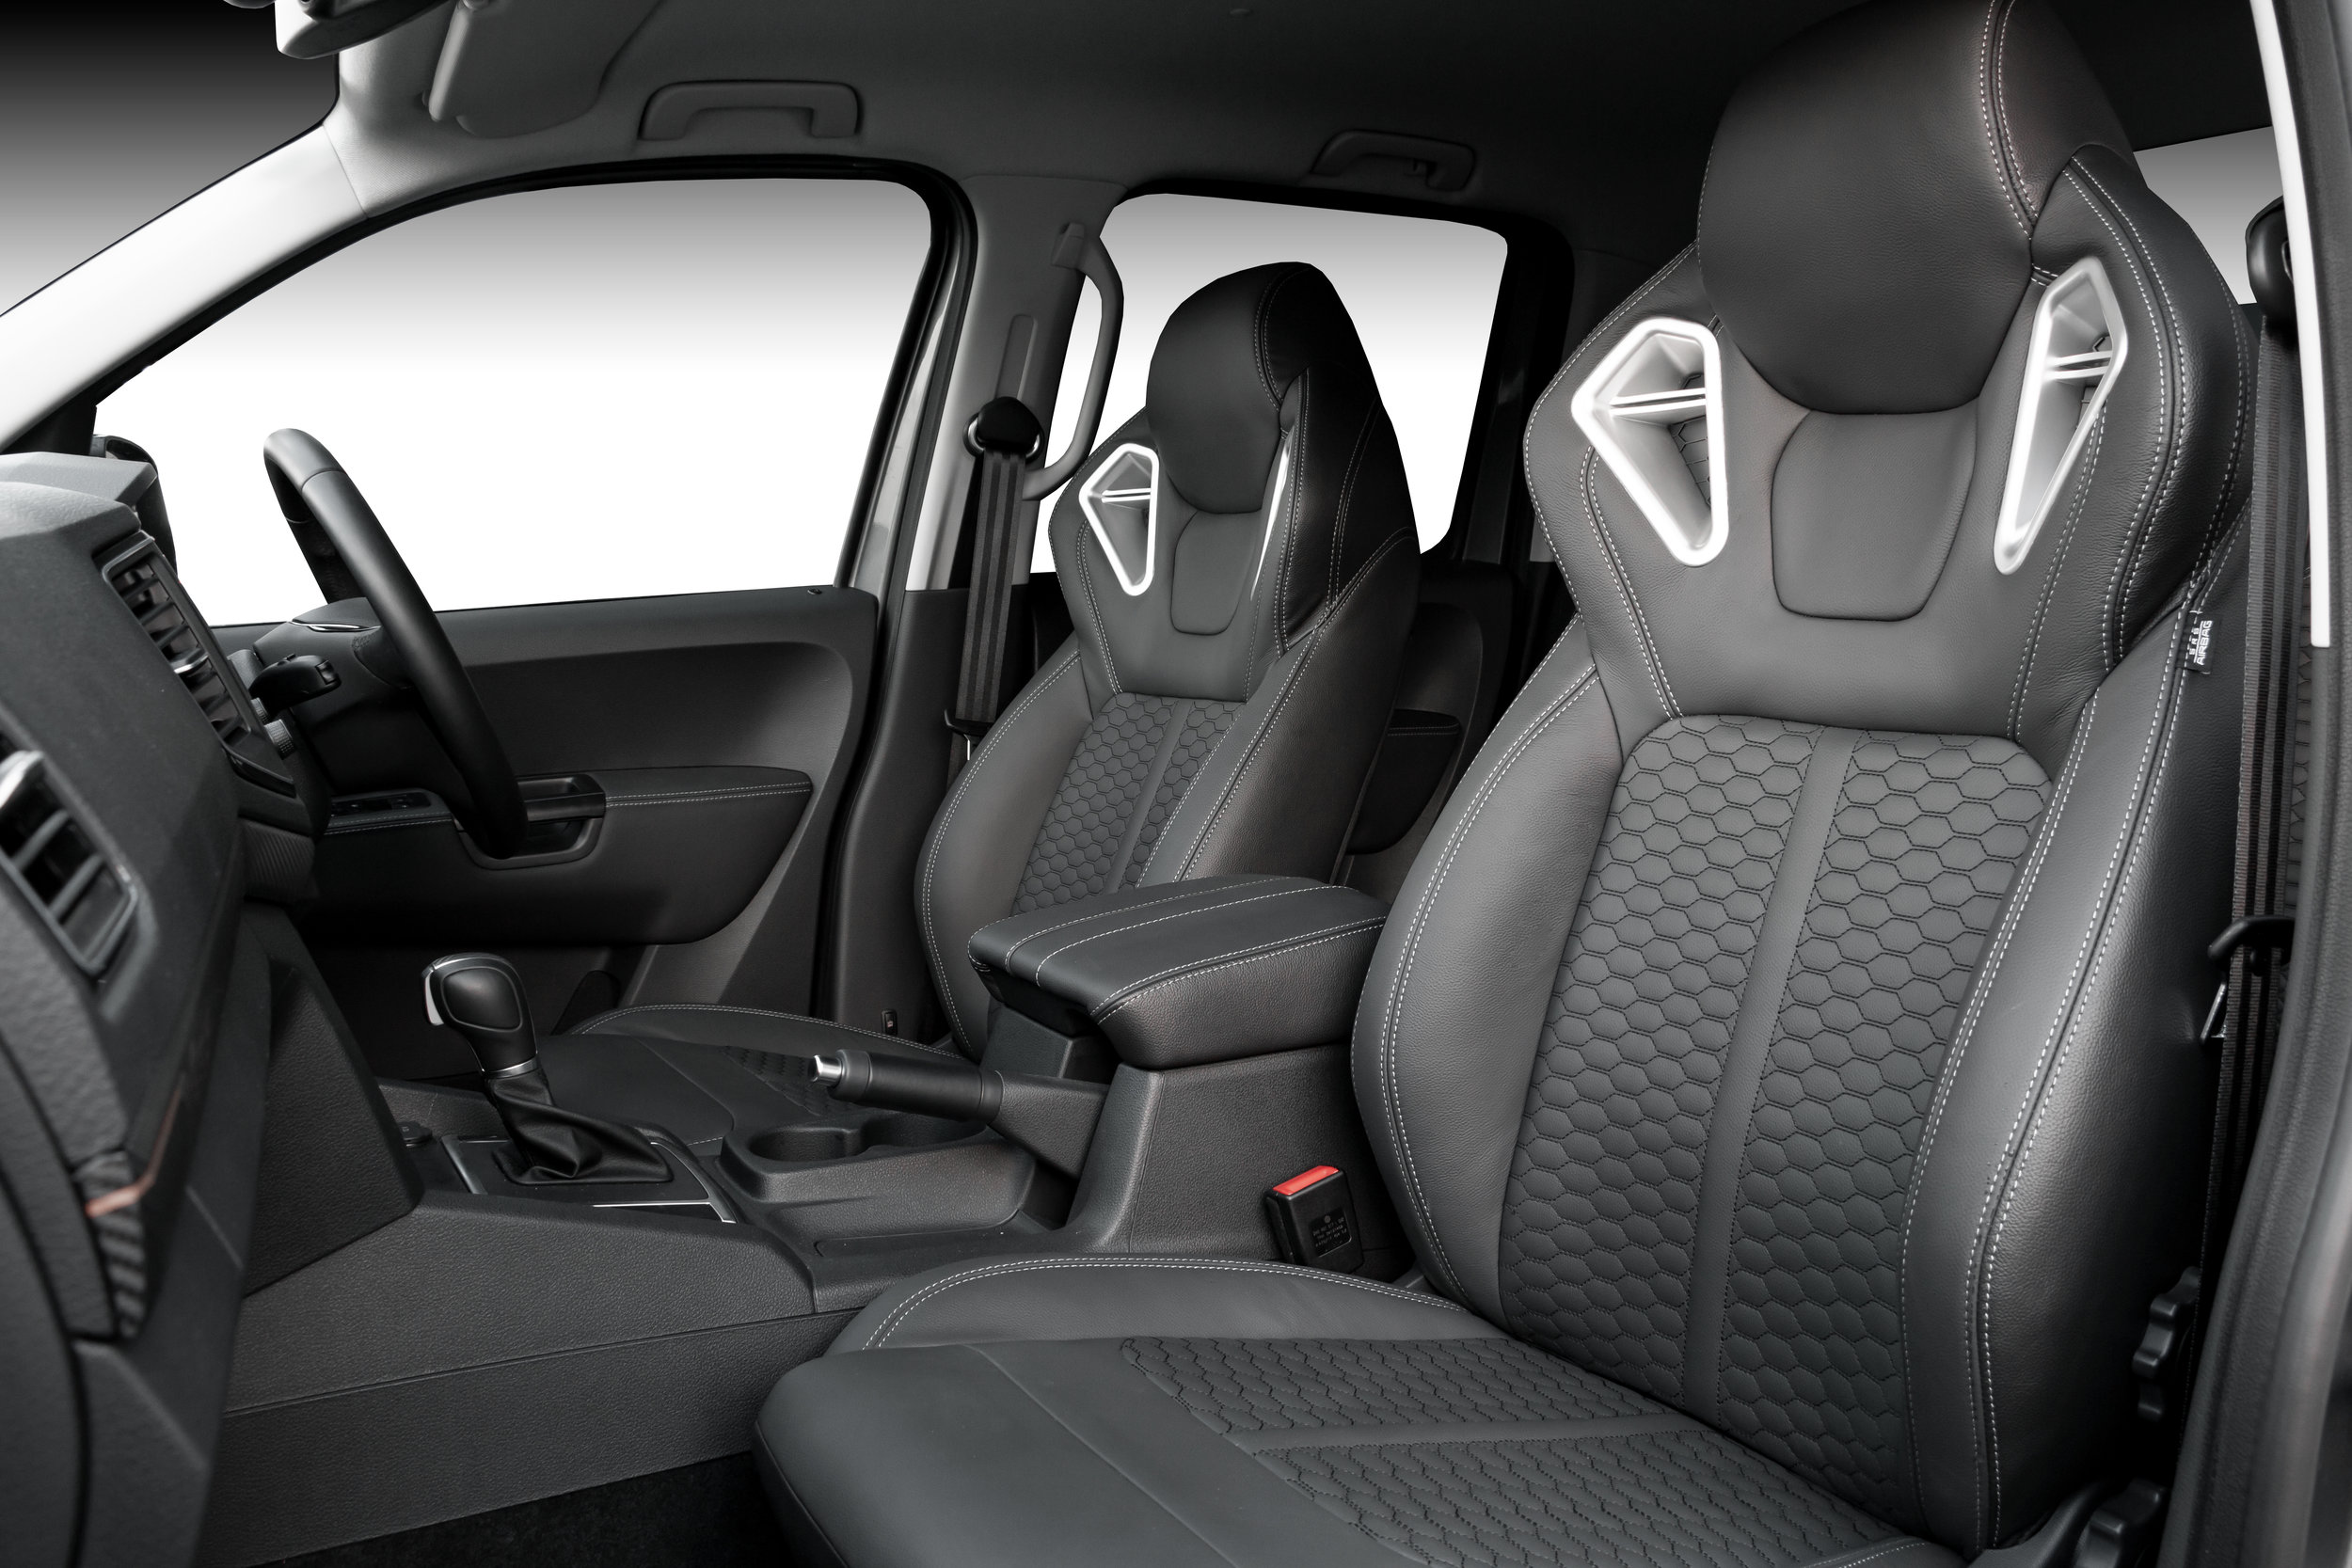 2019 VW Amarok with X-RS package.  Upgraded Monza sport seats in OEM spec black leather, silver stitching and designer honeycomb inserts.